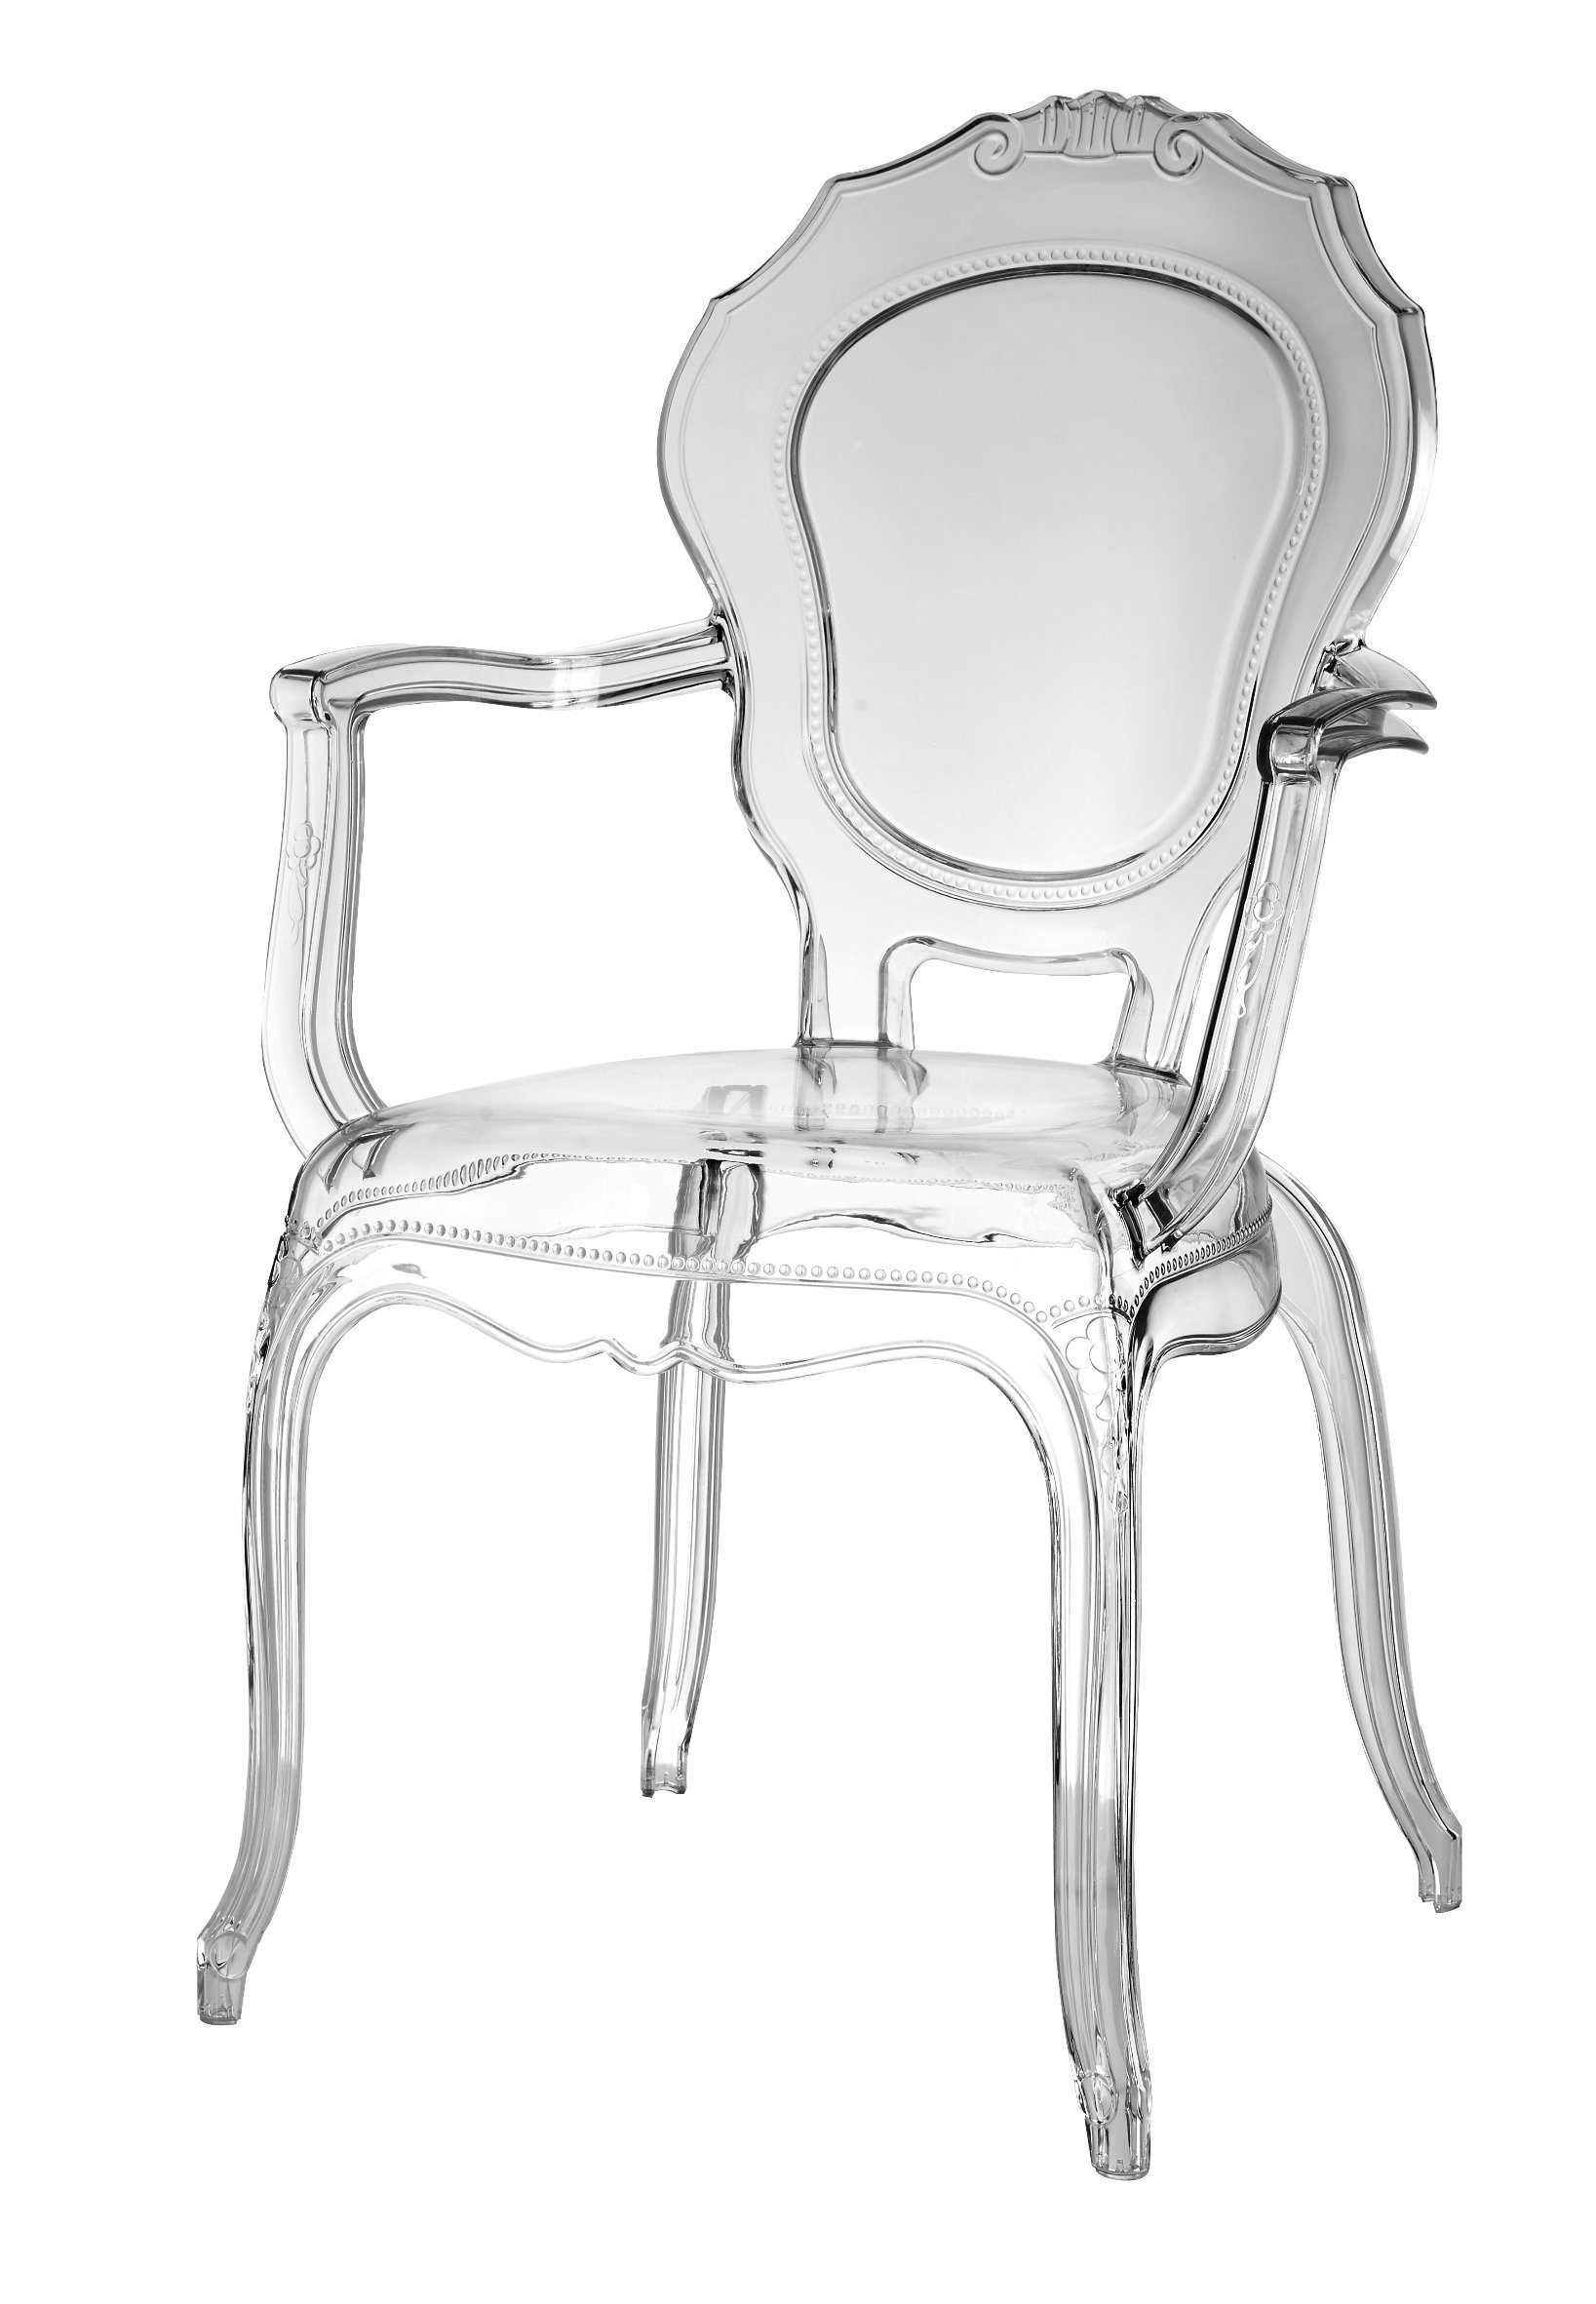 Phenomenal Hot Item Modern Leisure Dining Clear Resin Bella Plastic French Louis Chairs Princess Chair Camellatalisay Diy Chair Ideas Camellatalisaycom